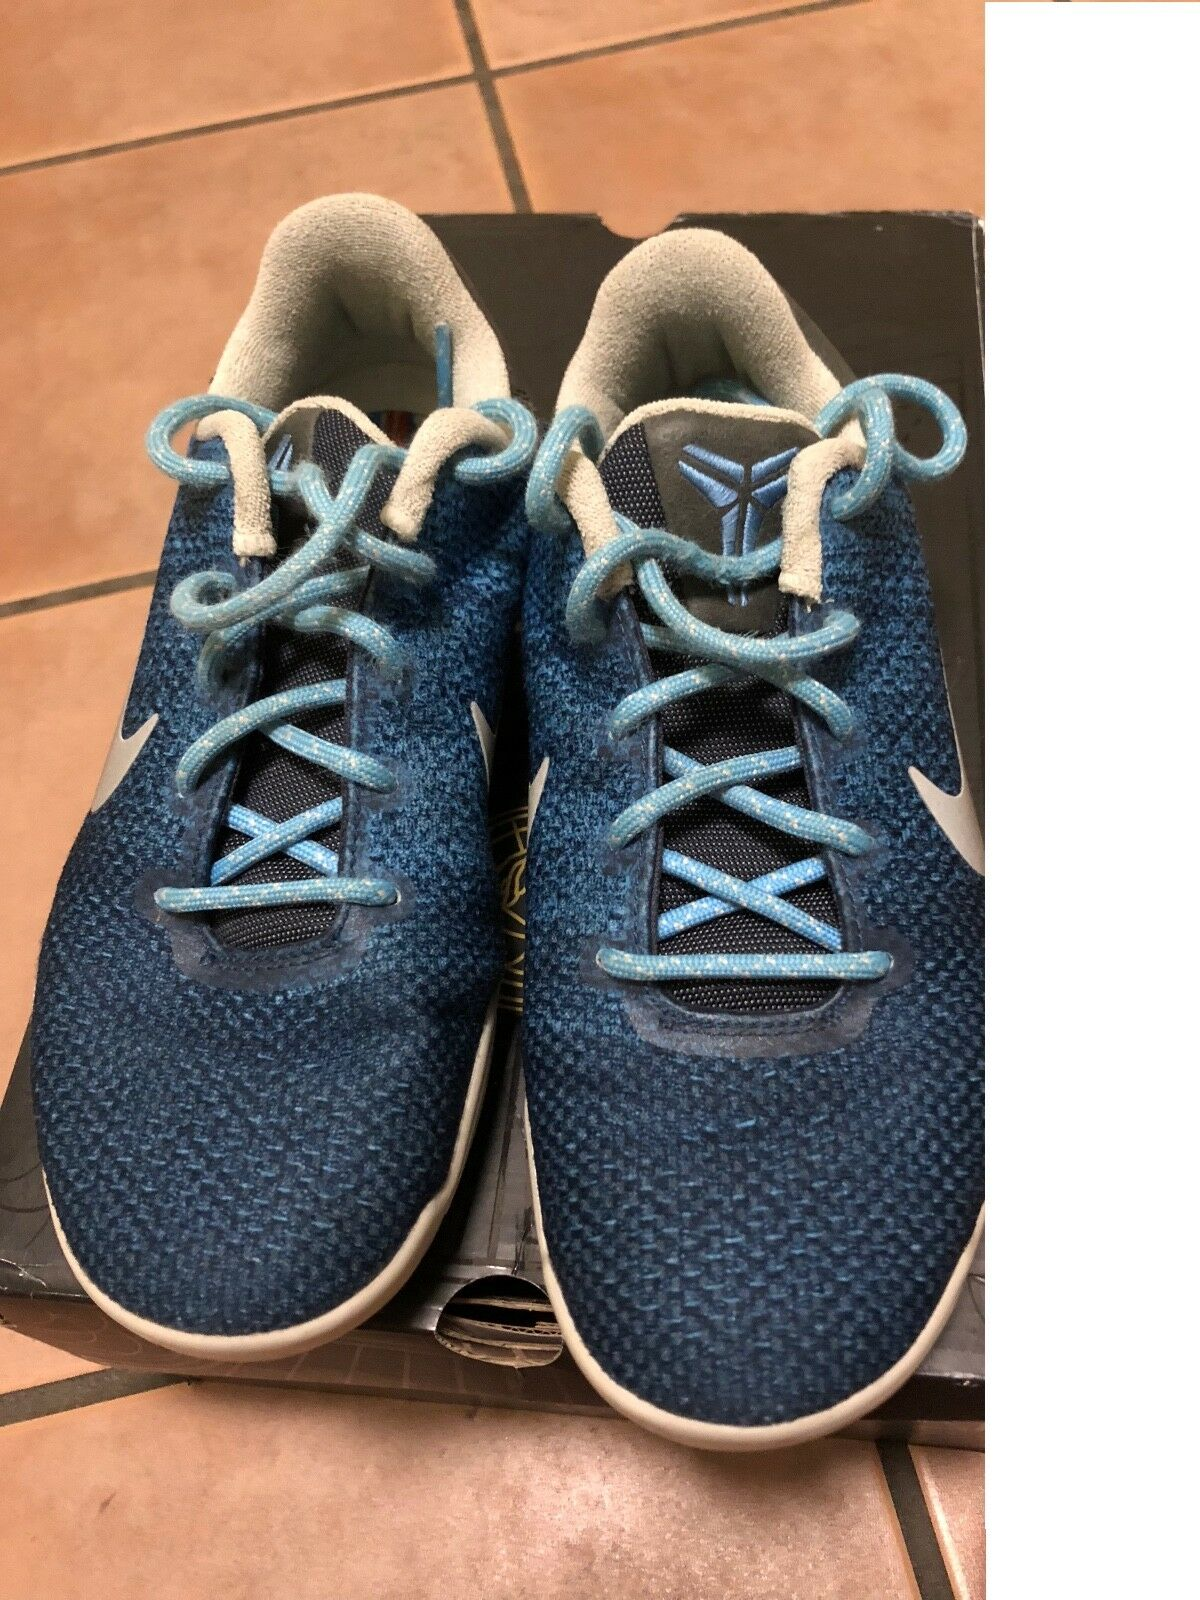 Nike Kobe 11 Brave Blue size 5 U.S Pre-Owned The most popular shoes for men and women